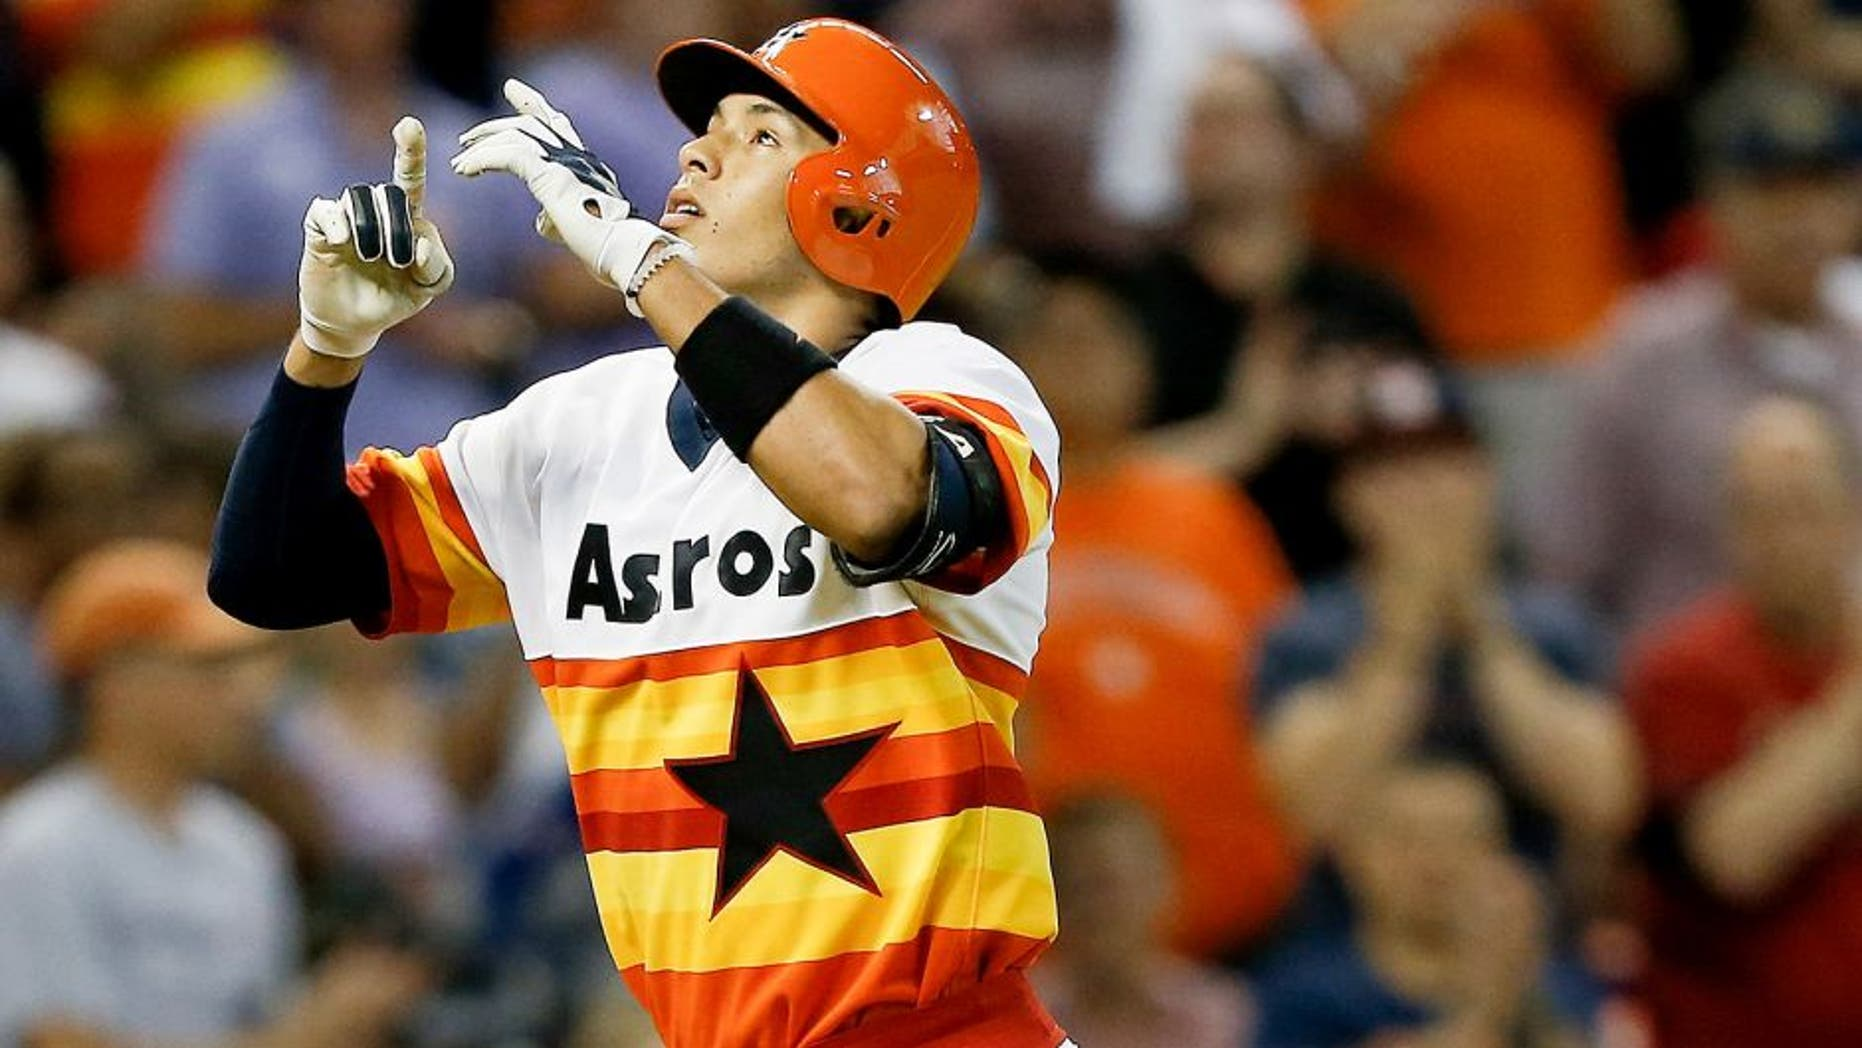 HOUSTON, TX - JULY 18: Carlos Correa #1 of the Houston Astros hits a home run in the seventh inning against the Texas Rangers at Minute Maid Park on July 18, 2015 in Houston, Texas. (Photo by Bob Levey/Getty Images)